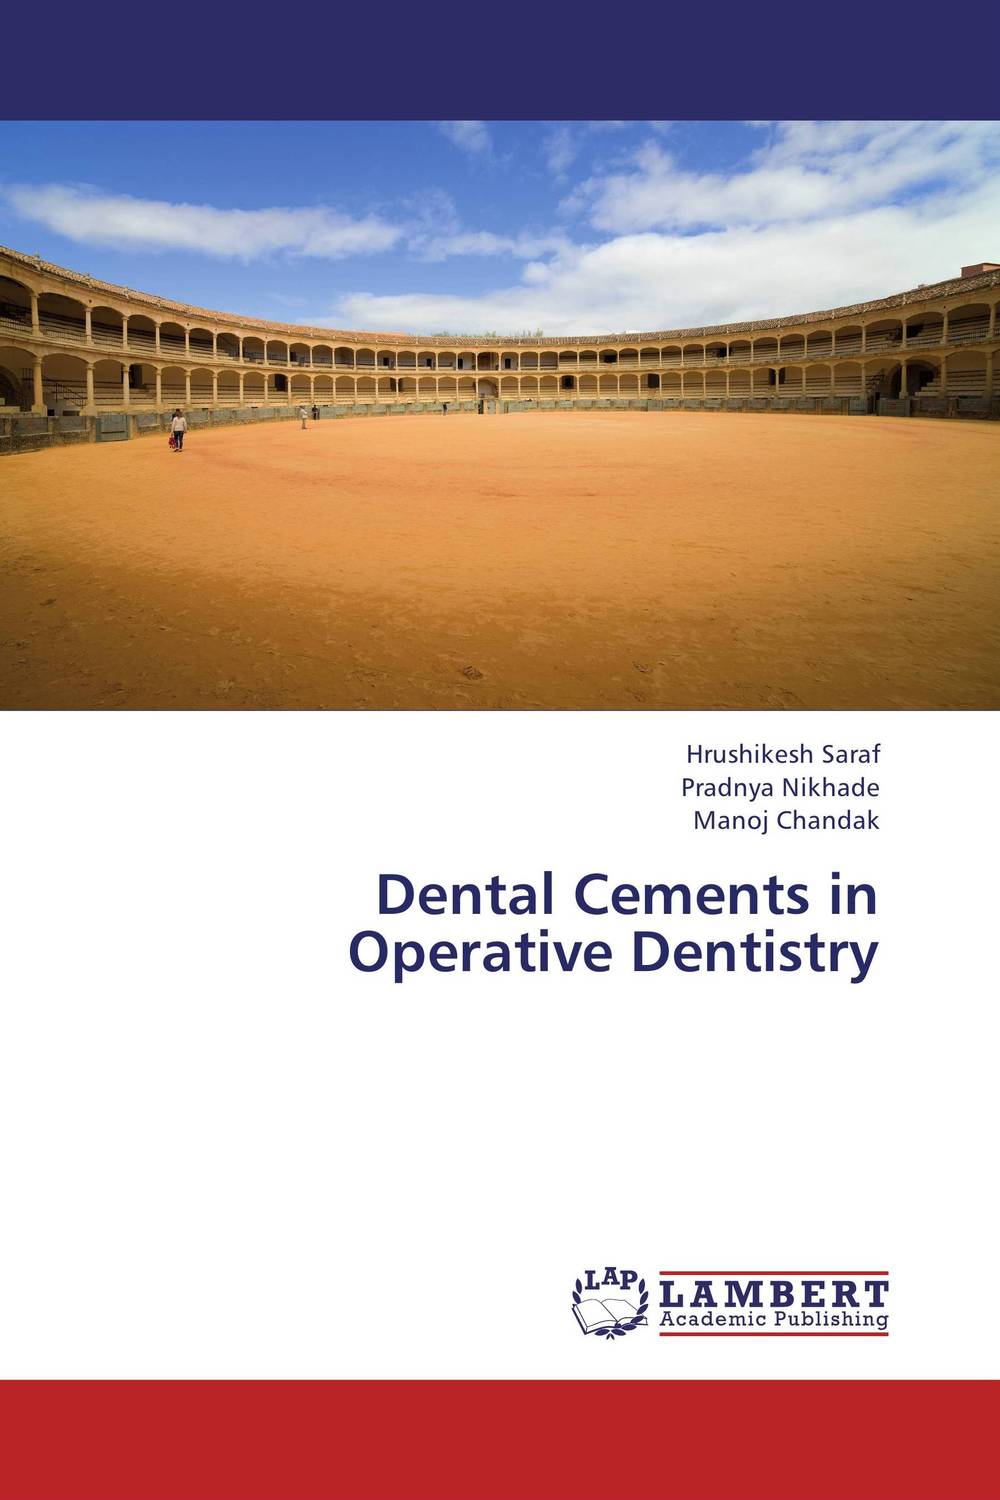 Dental Cements in Operative Dentistry